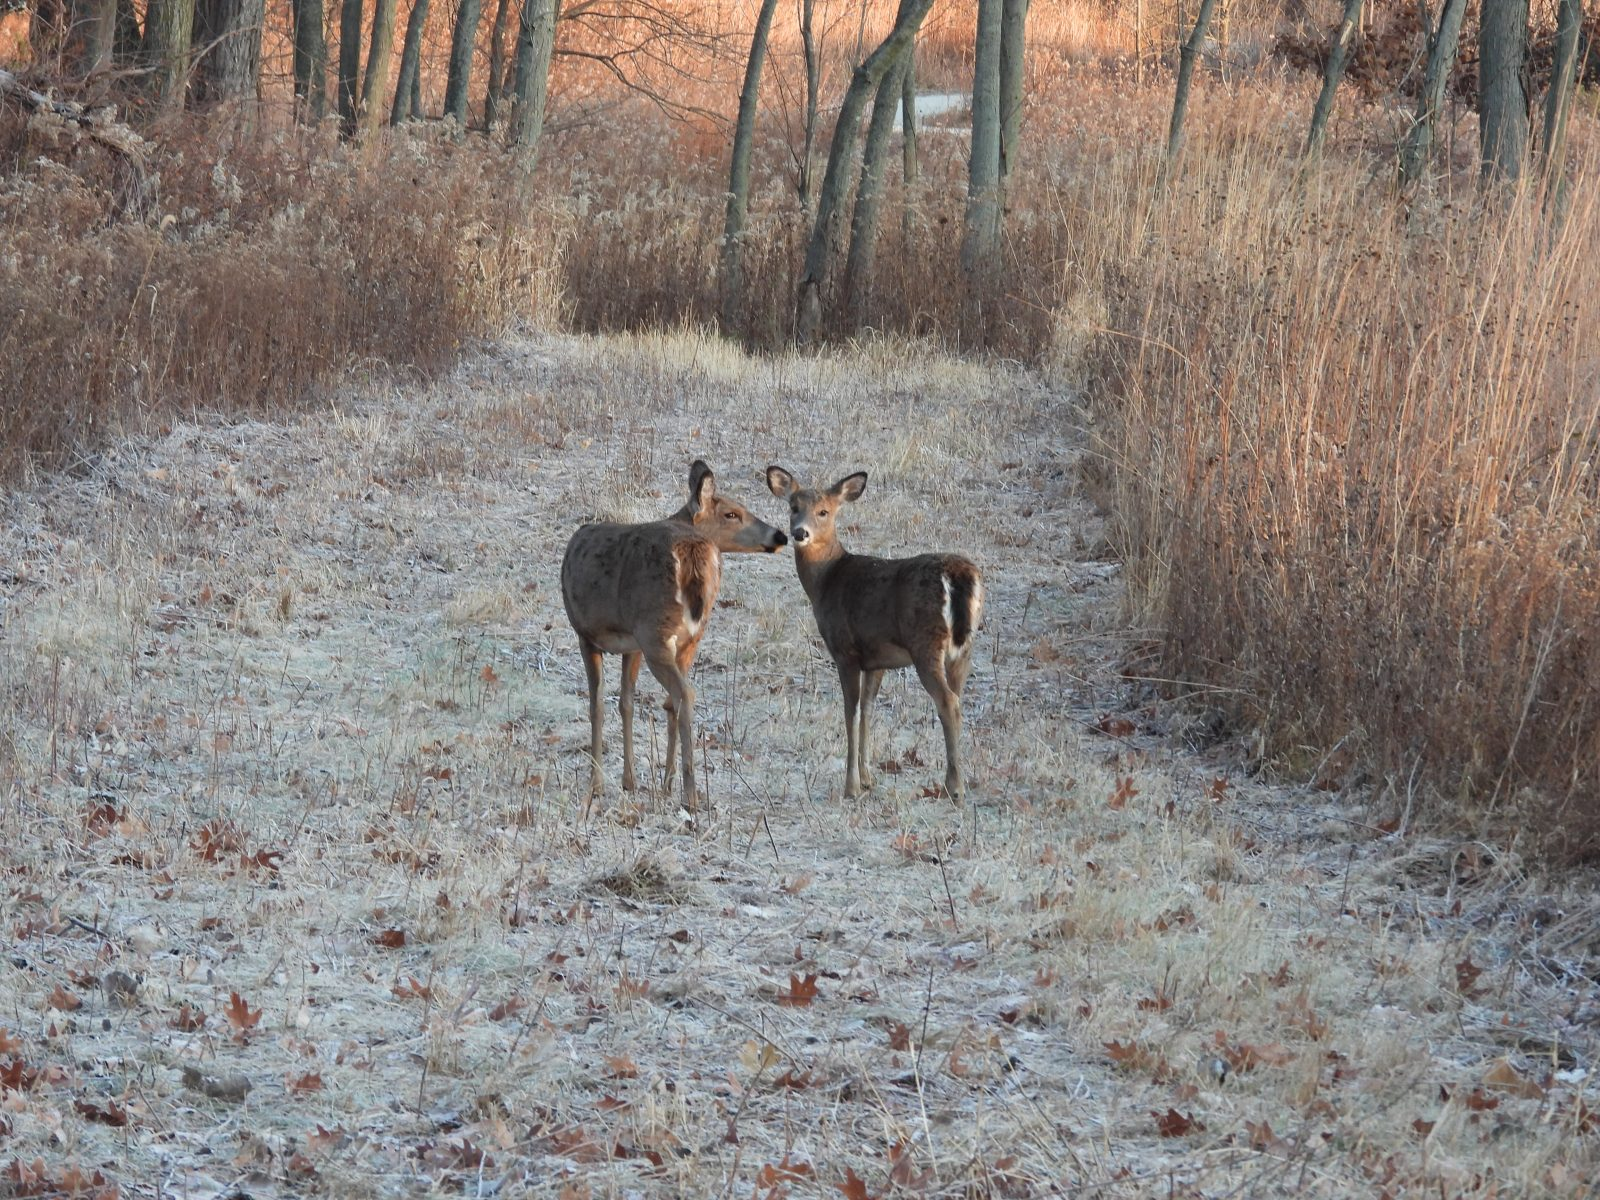 White deer in the woods: A white-tailed deer doe sniffs another doe in a touching moment as they walk a mowed path filled with frost in a small clearing in the forest on late autumn morning at sunrise